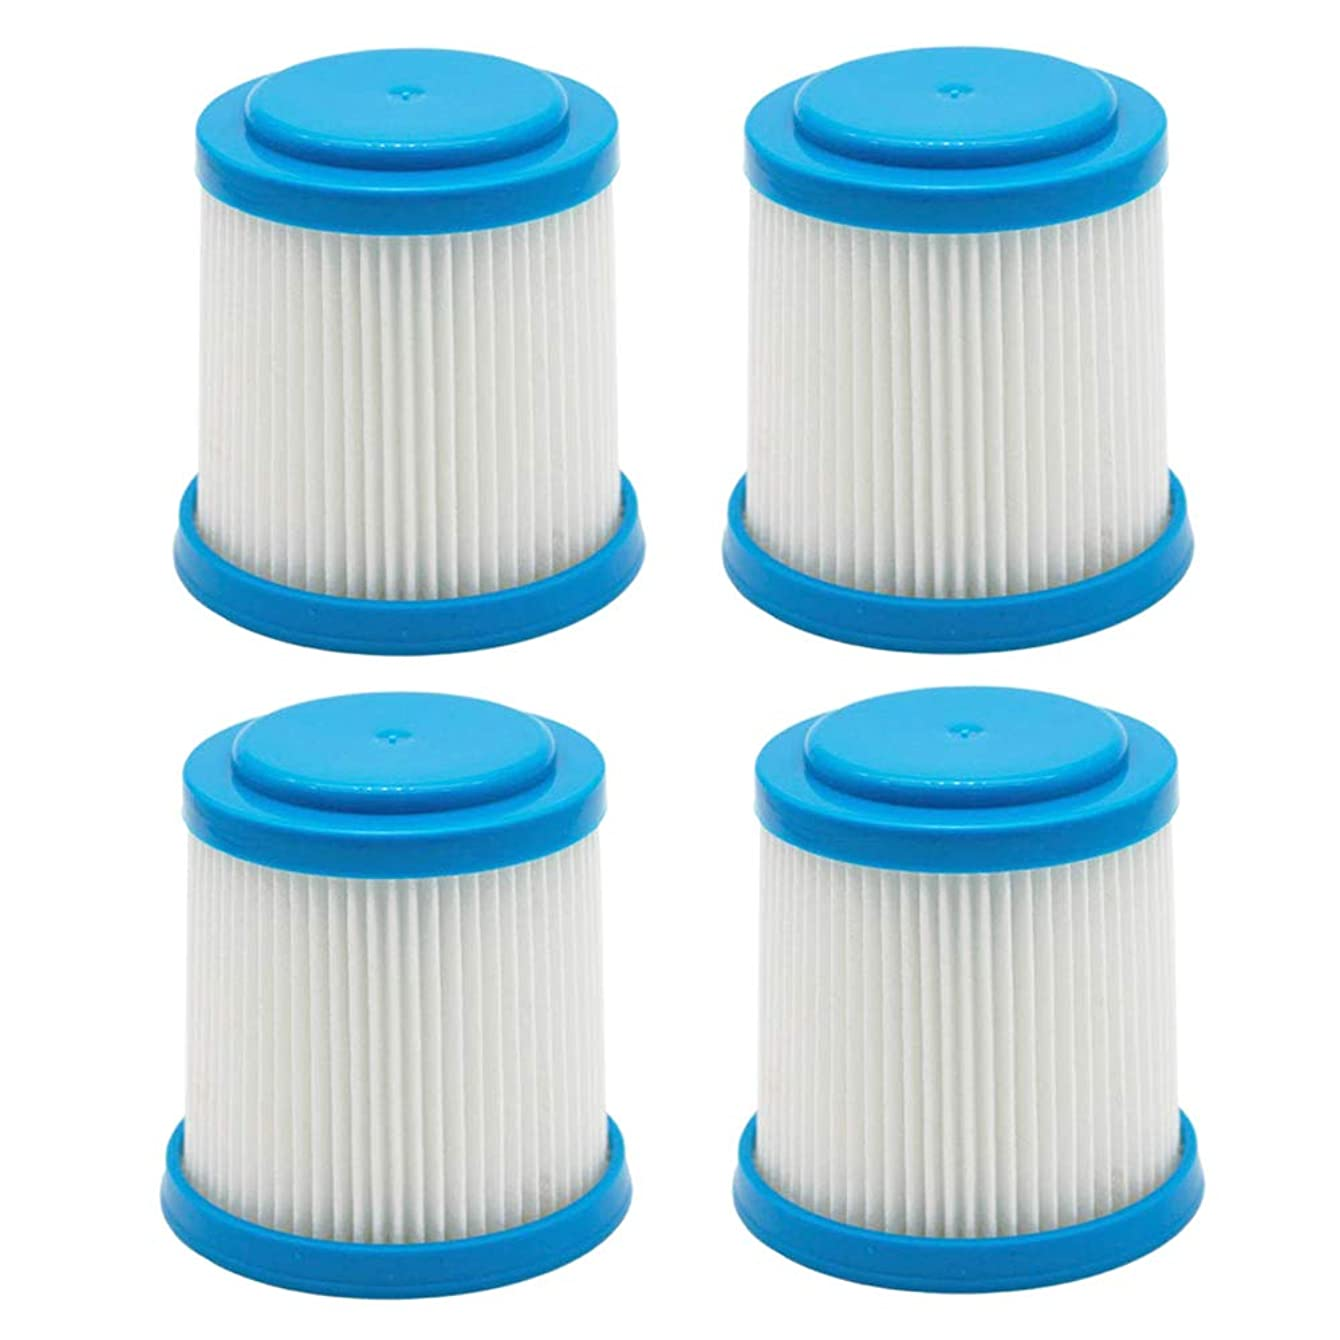 BBT(BAMBOOST) VPF20 Filter Replacement Fit for Black and Decker Vacuum Washable - 4 Packs